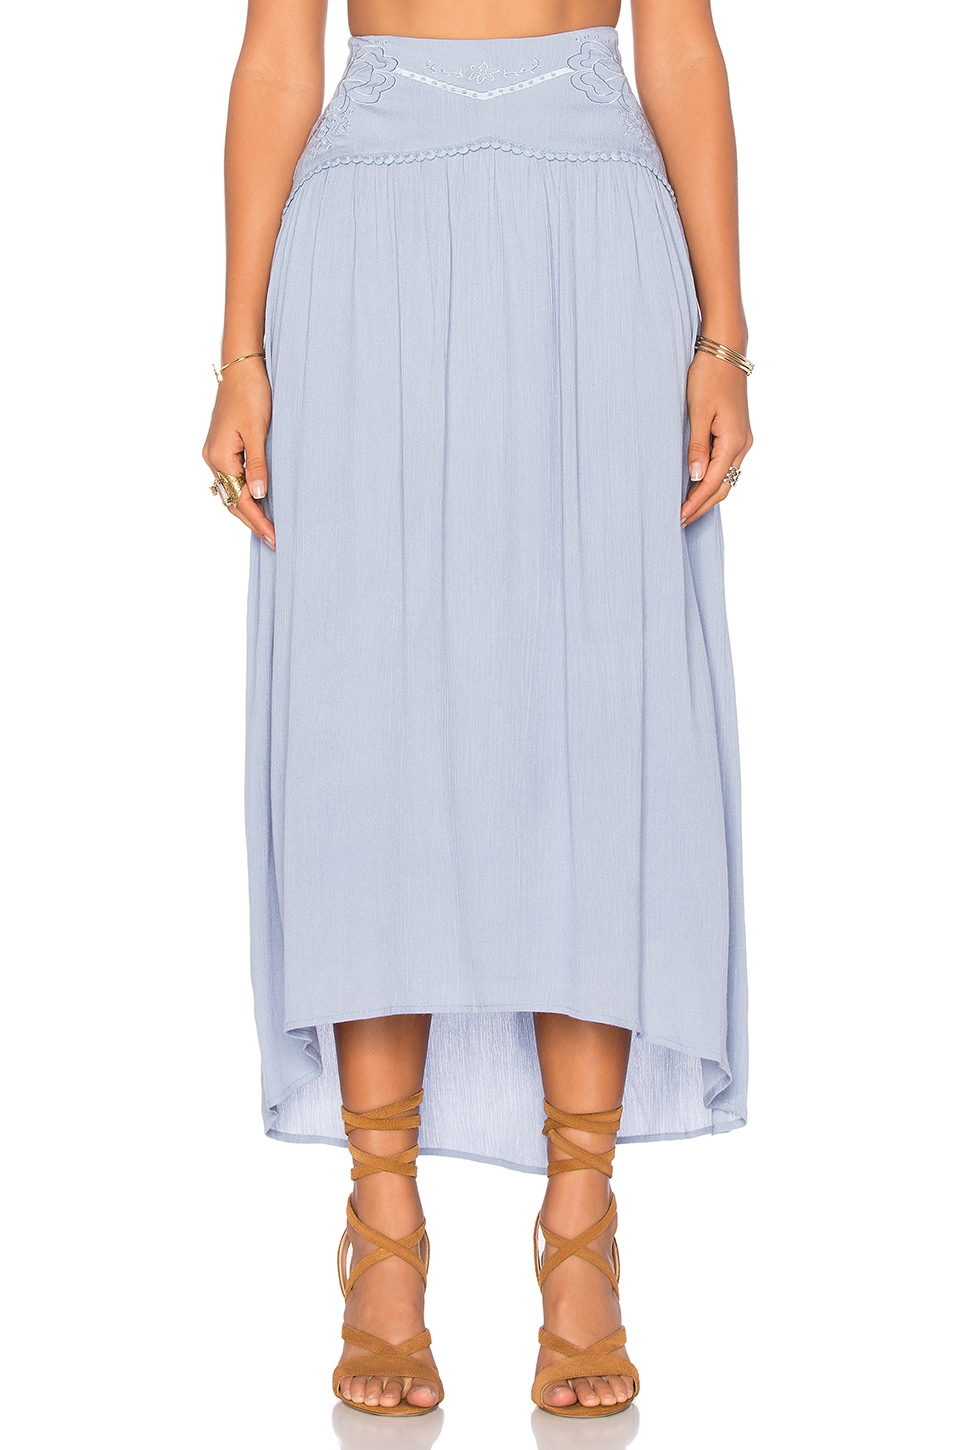 MINKPINK Spirited Away Skirt in Blue